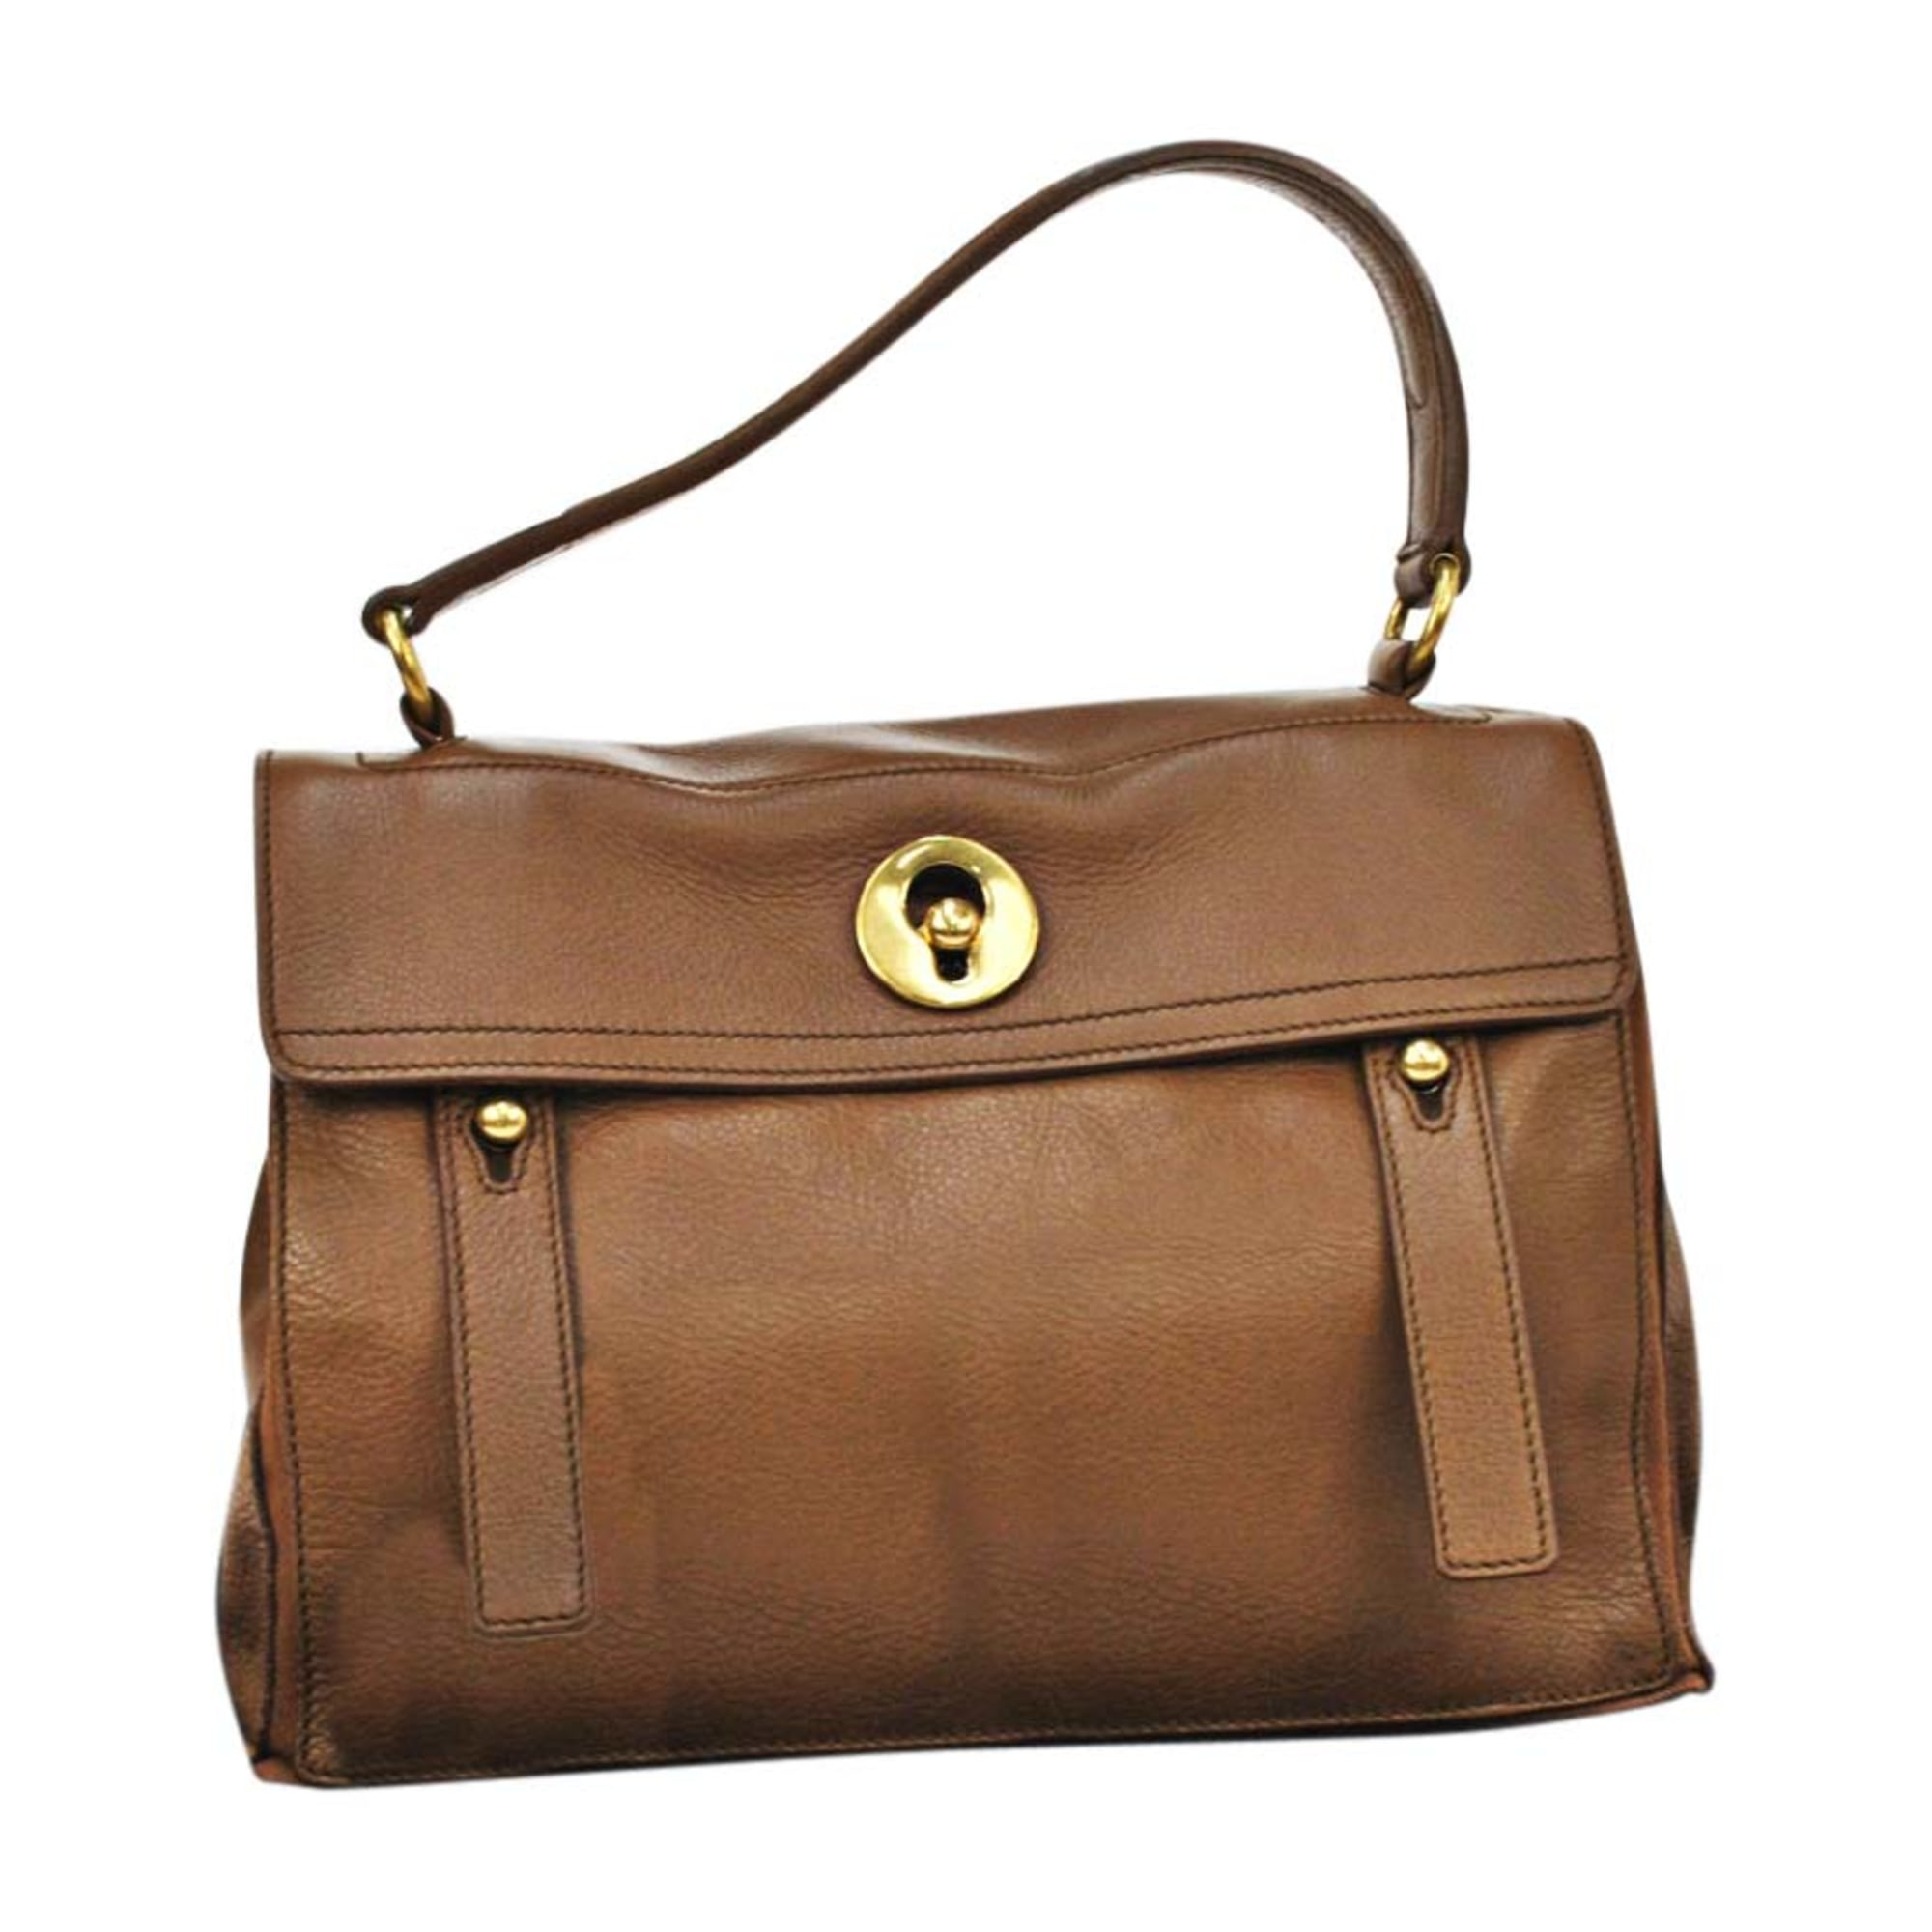 5541654 Yves Sac Two À Cuir Main En Laurent Muse Saint Marron wOPkXuTZi